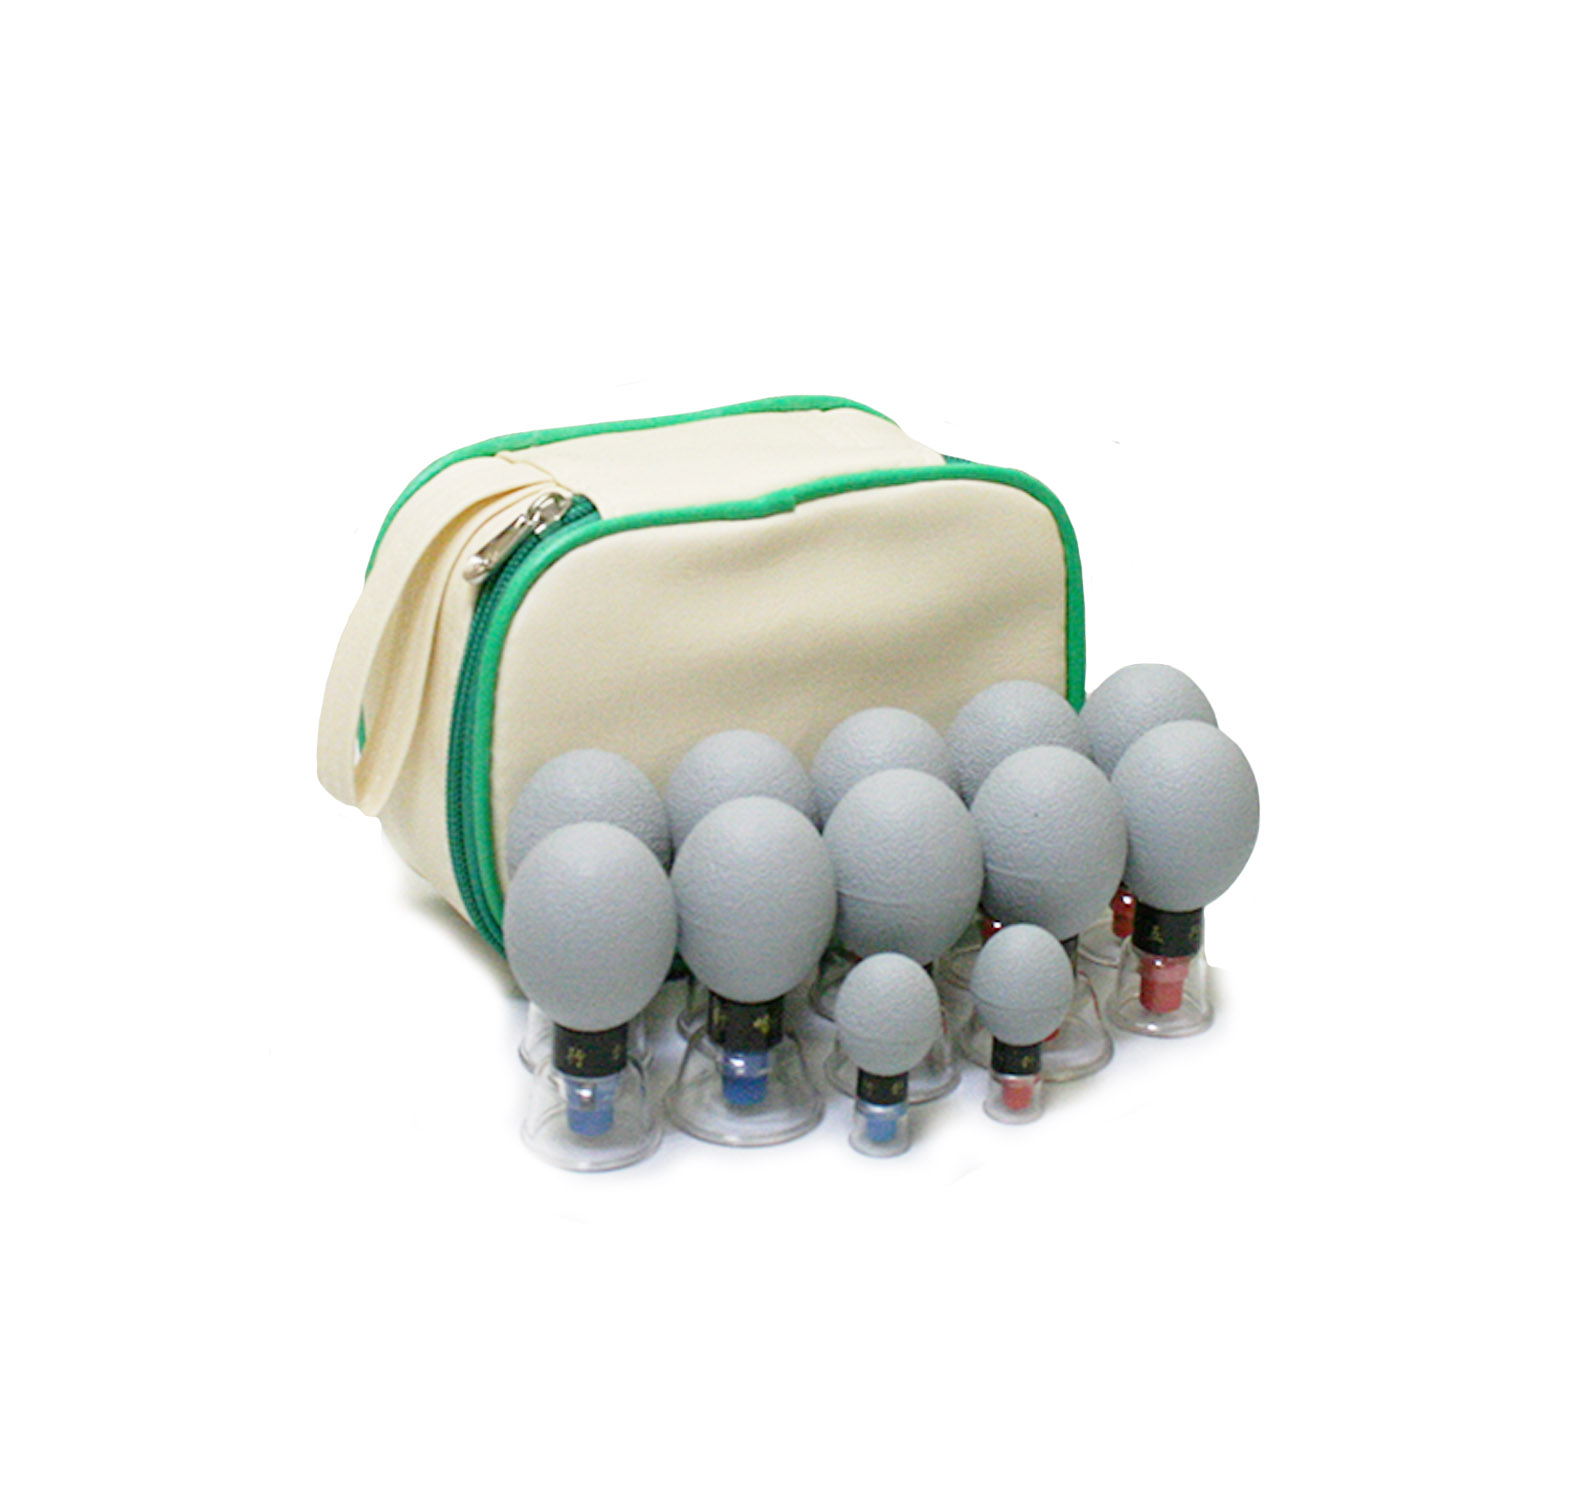 Haci magnetic cupping set